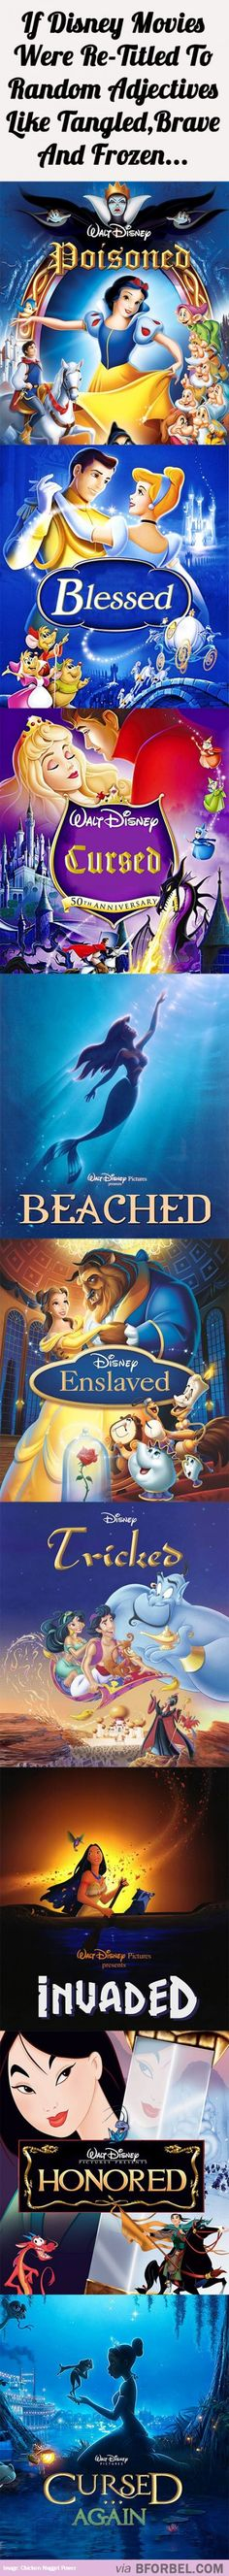 "If Disney Movies Were Retitled To Random Adjectives Like ""Frozen"" And ""Tangled""…<-- My favorite is ""Cursed...Again"" it's hilarious I'm pretty sure it would be ""Kissed"" if it was named anything like that."